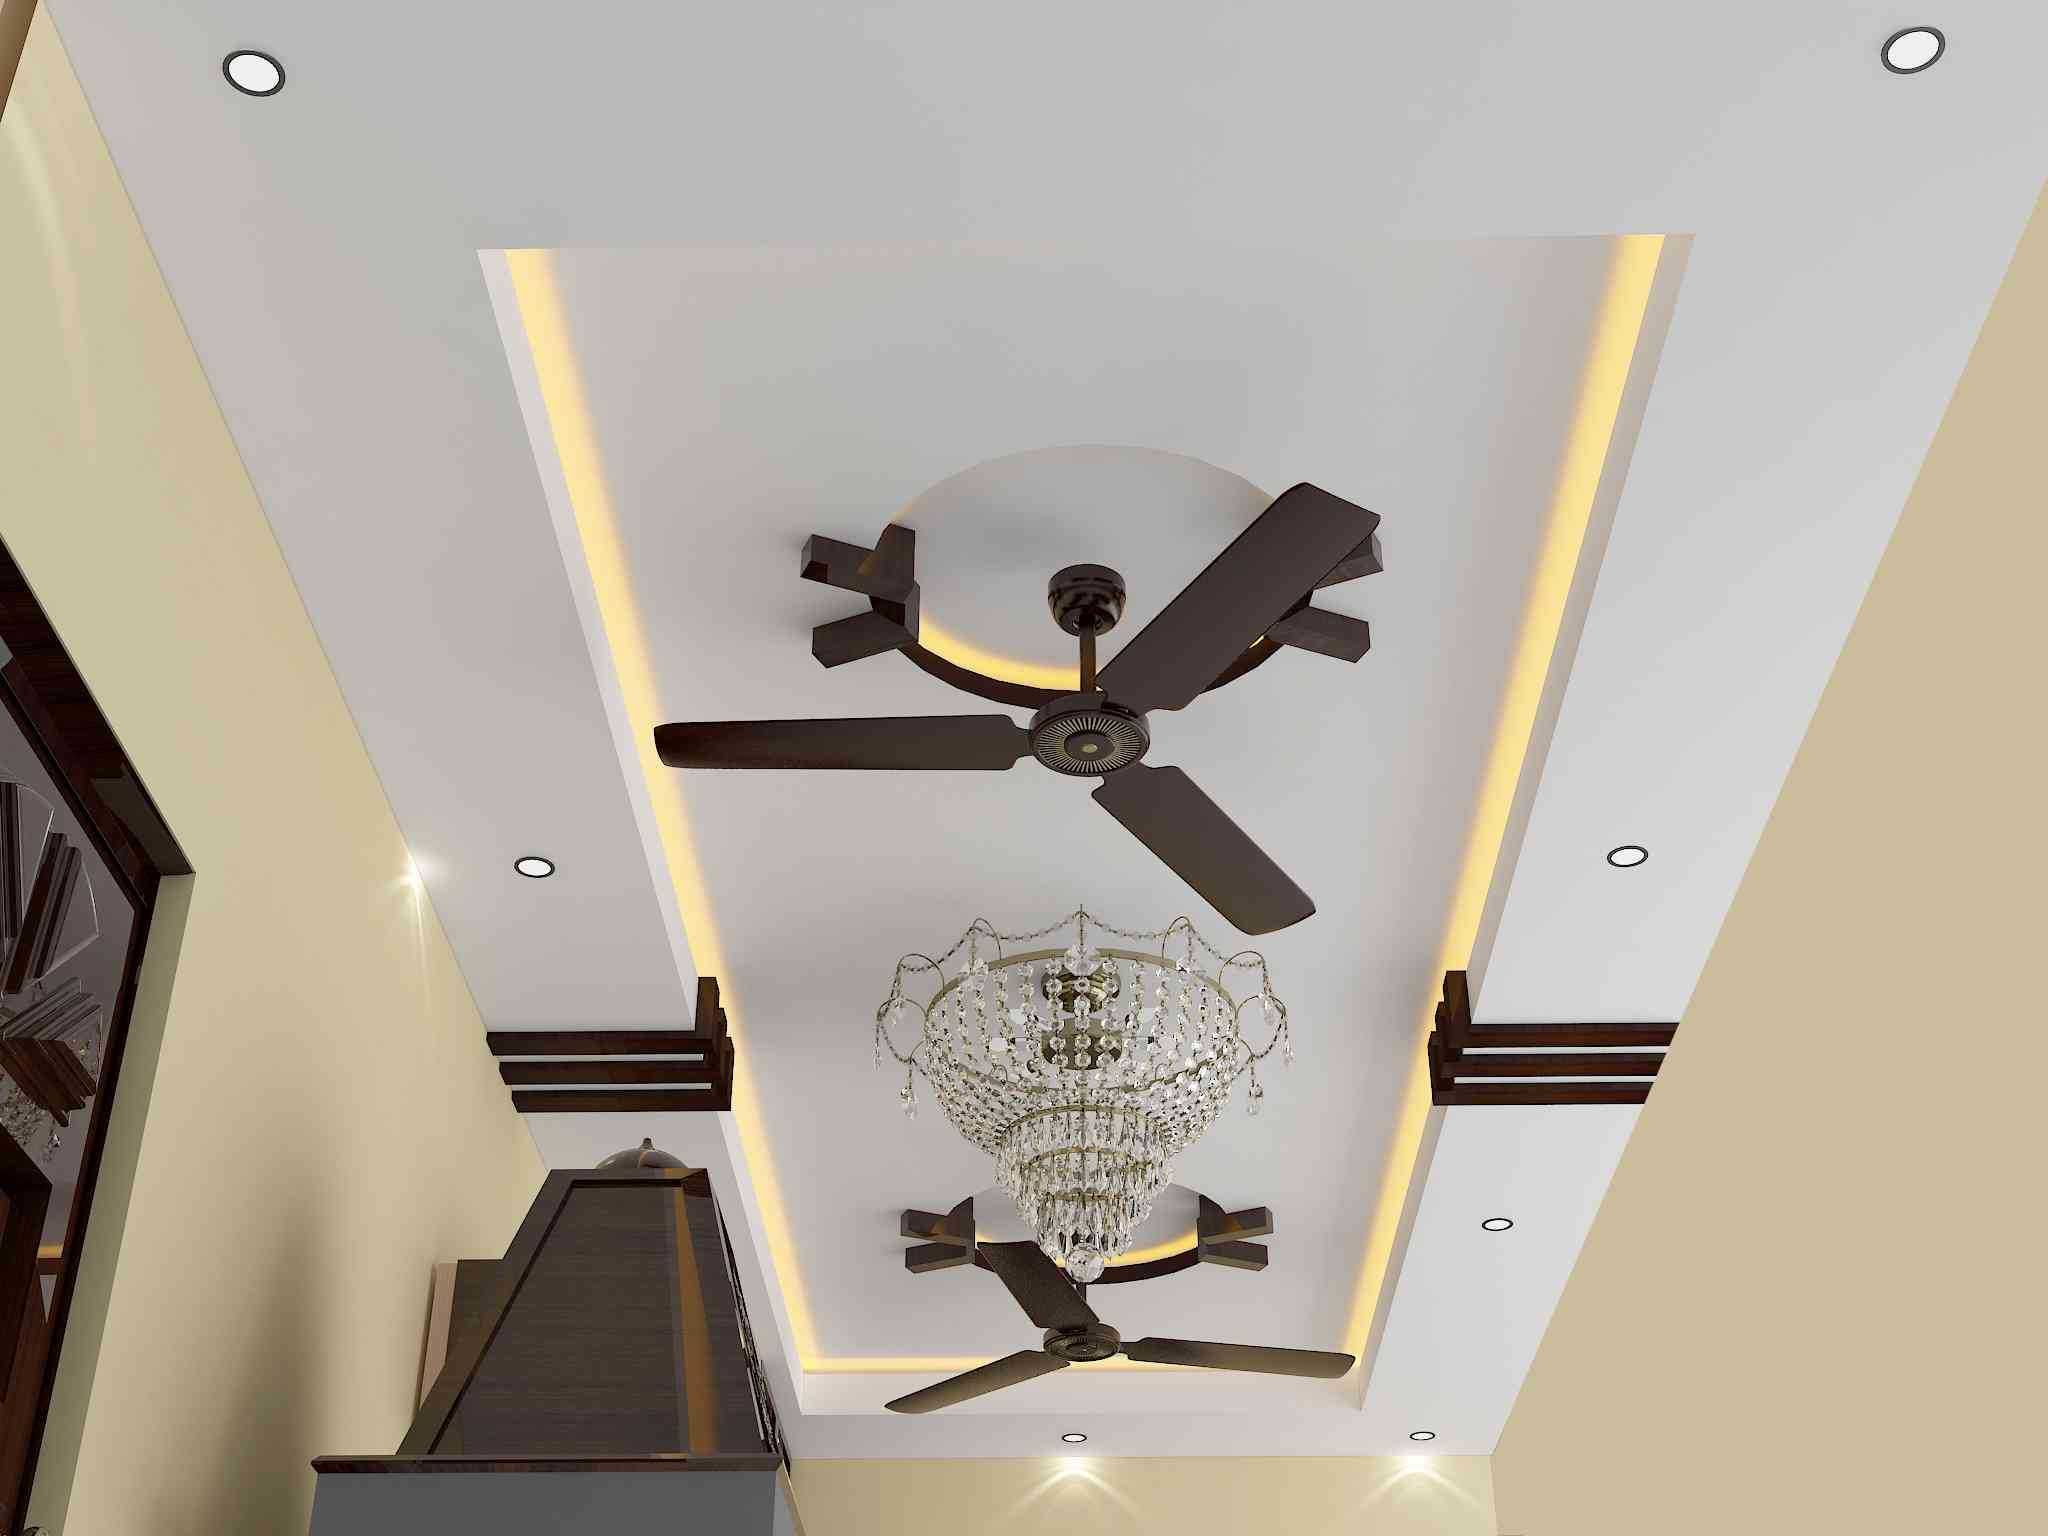 Pop Ceiling Design For Hall With 2 Fans  New Blog